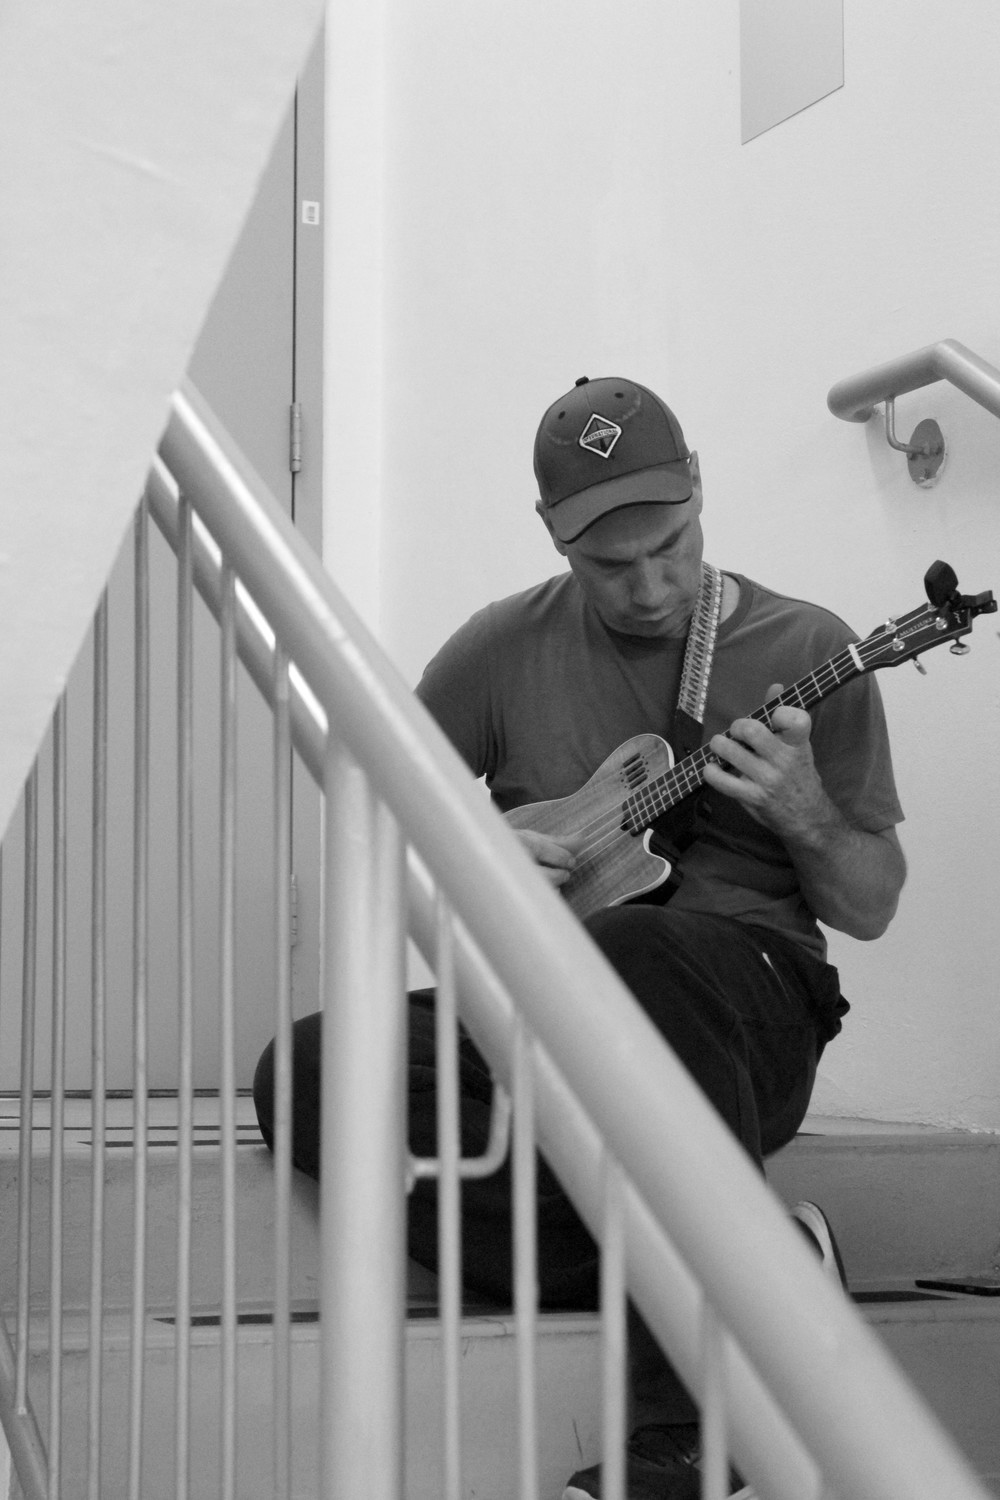 Stairwell Singing 21 AUG 19.JPG